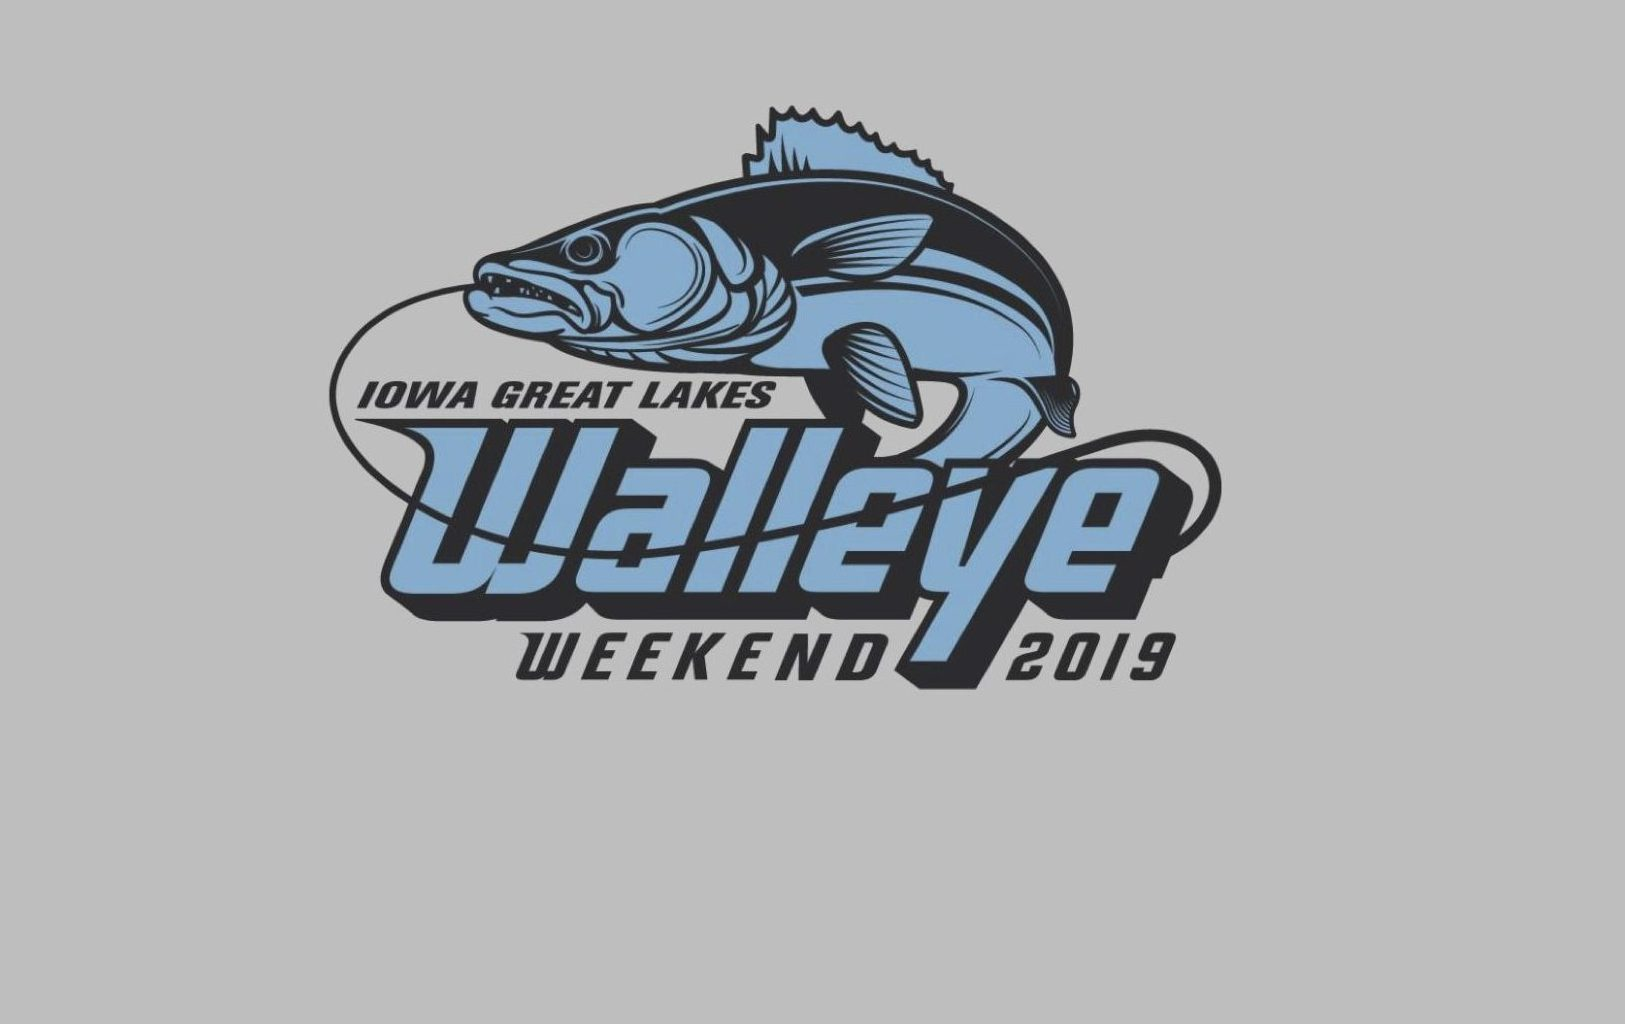 37th Annual Walleye Weekend